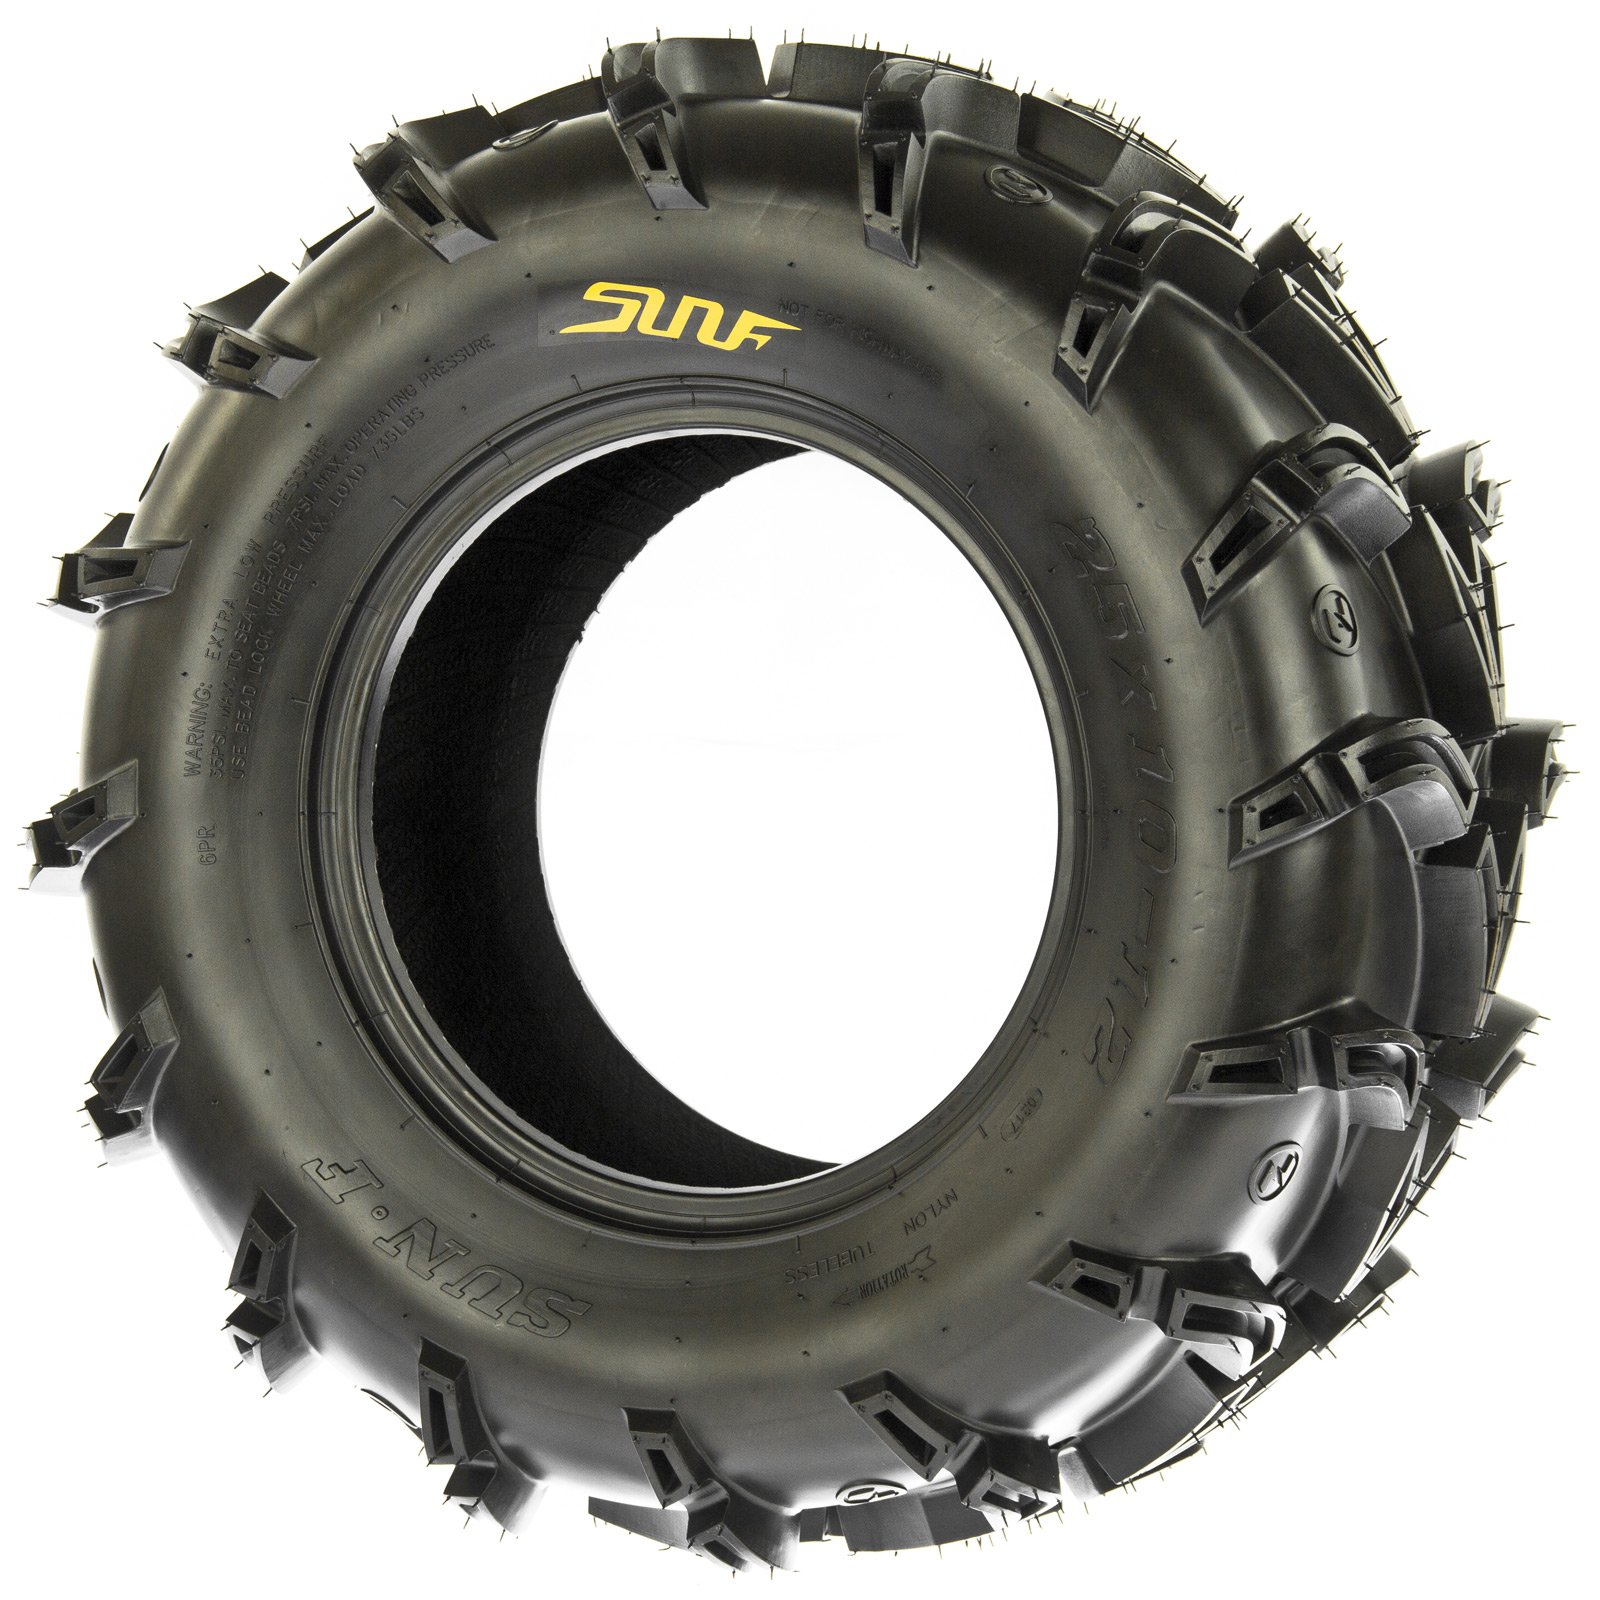 SunF A050 AT Mud & Trail 25x11-10 ATV UTV Tires, 6PR, Tubeless by SunF (Image #4)